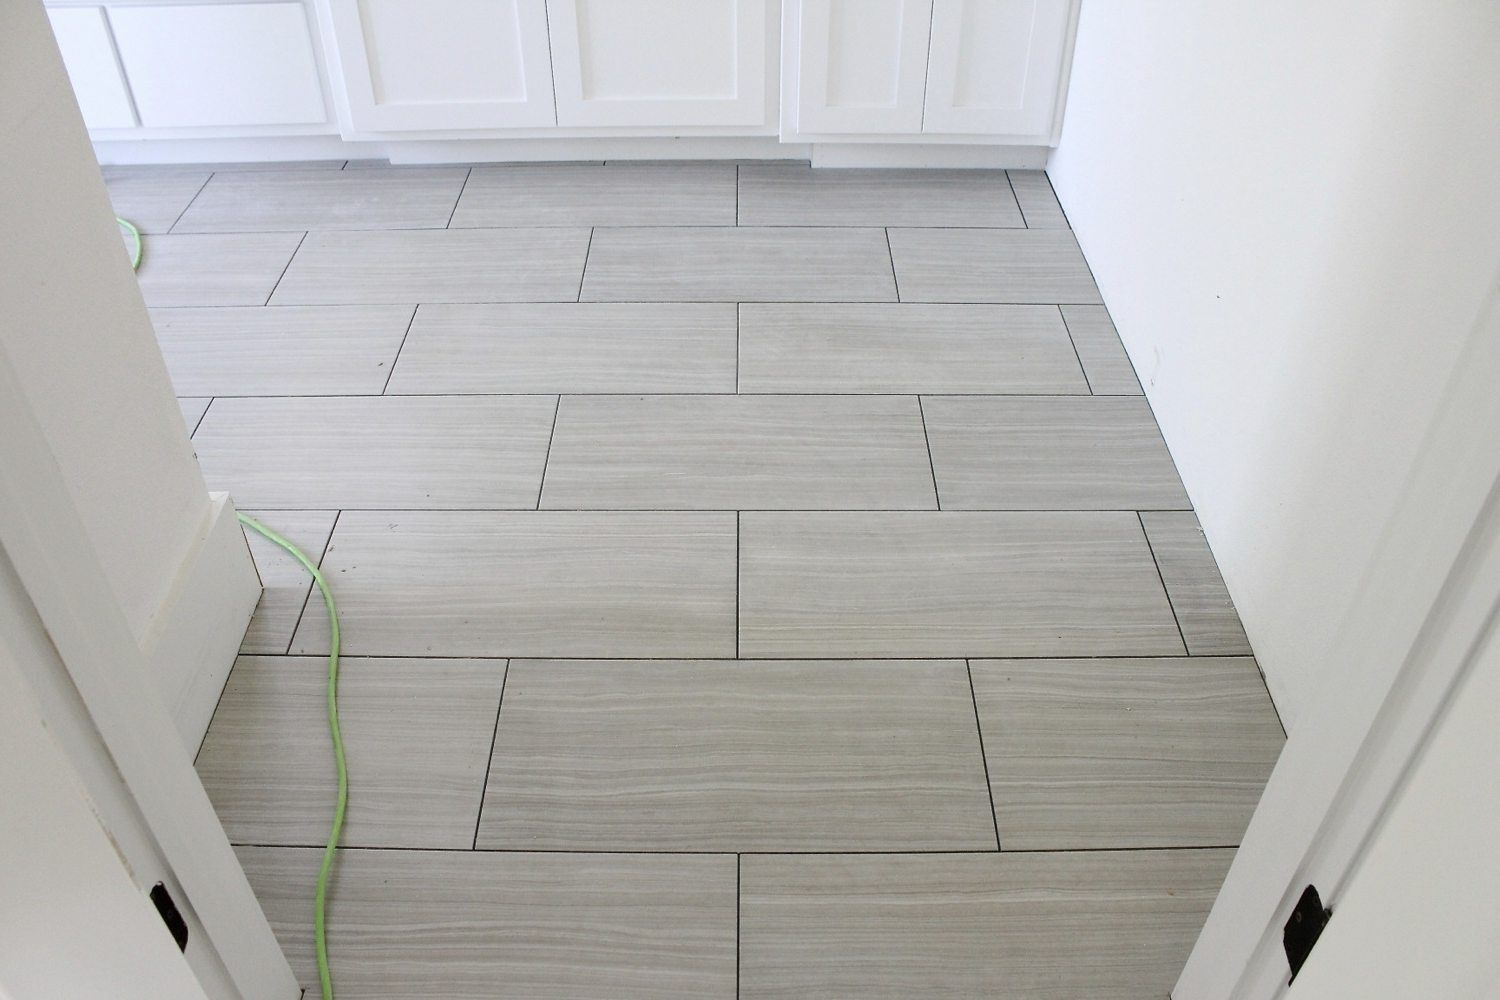 How To Lay Out Ceramic Tile Floor Tile Design Ideas Tile Layout Contemporary Tile Floor Flooring